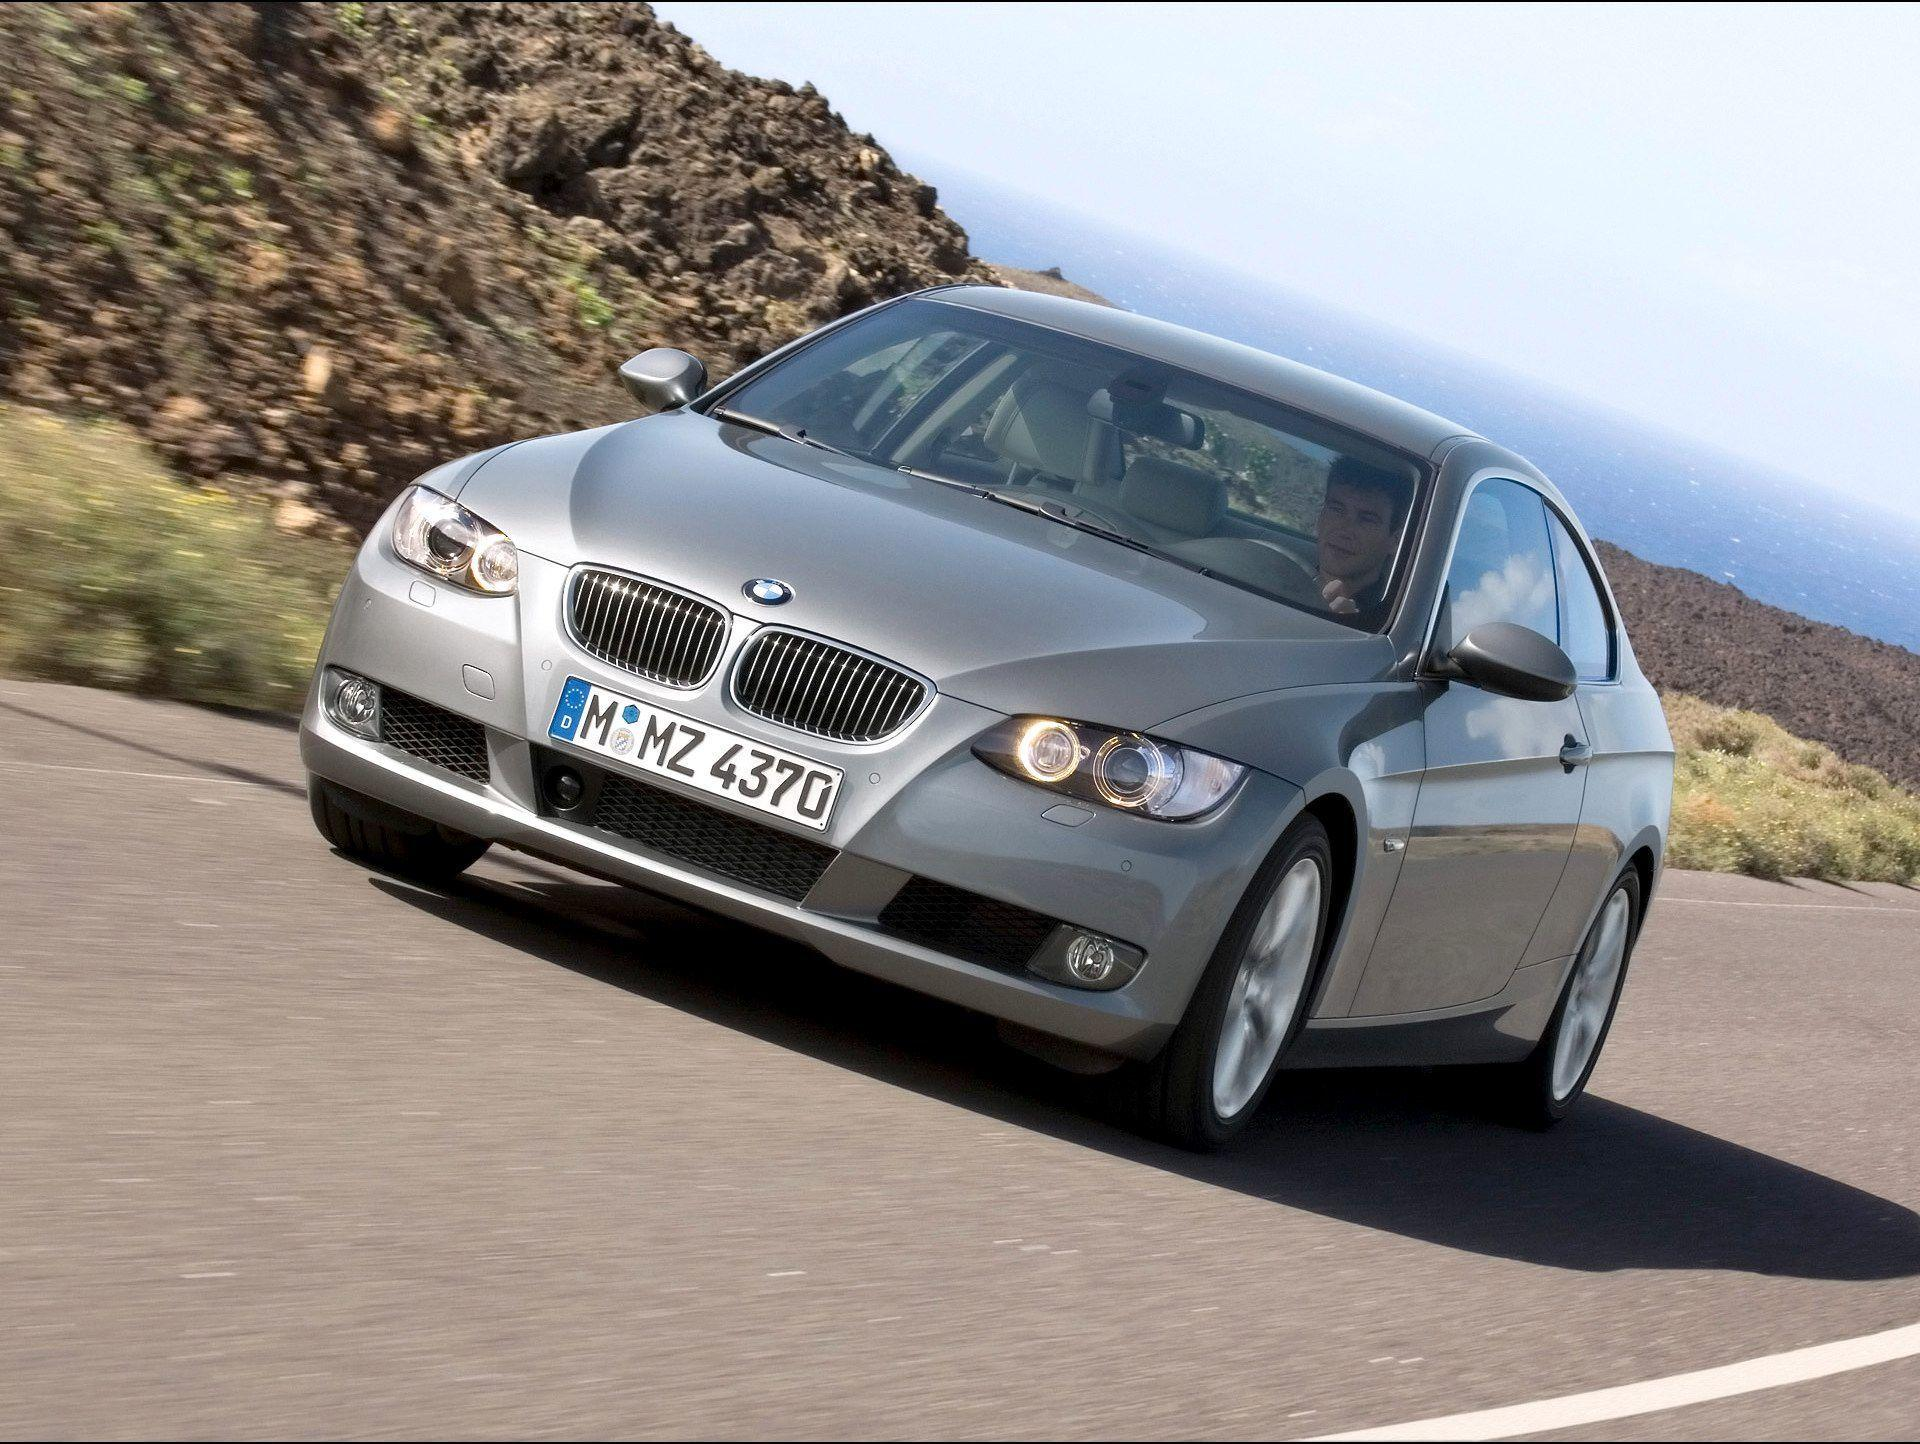 2007 BMW 335i Coupe Wallpaper 01 - 1920x1440